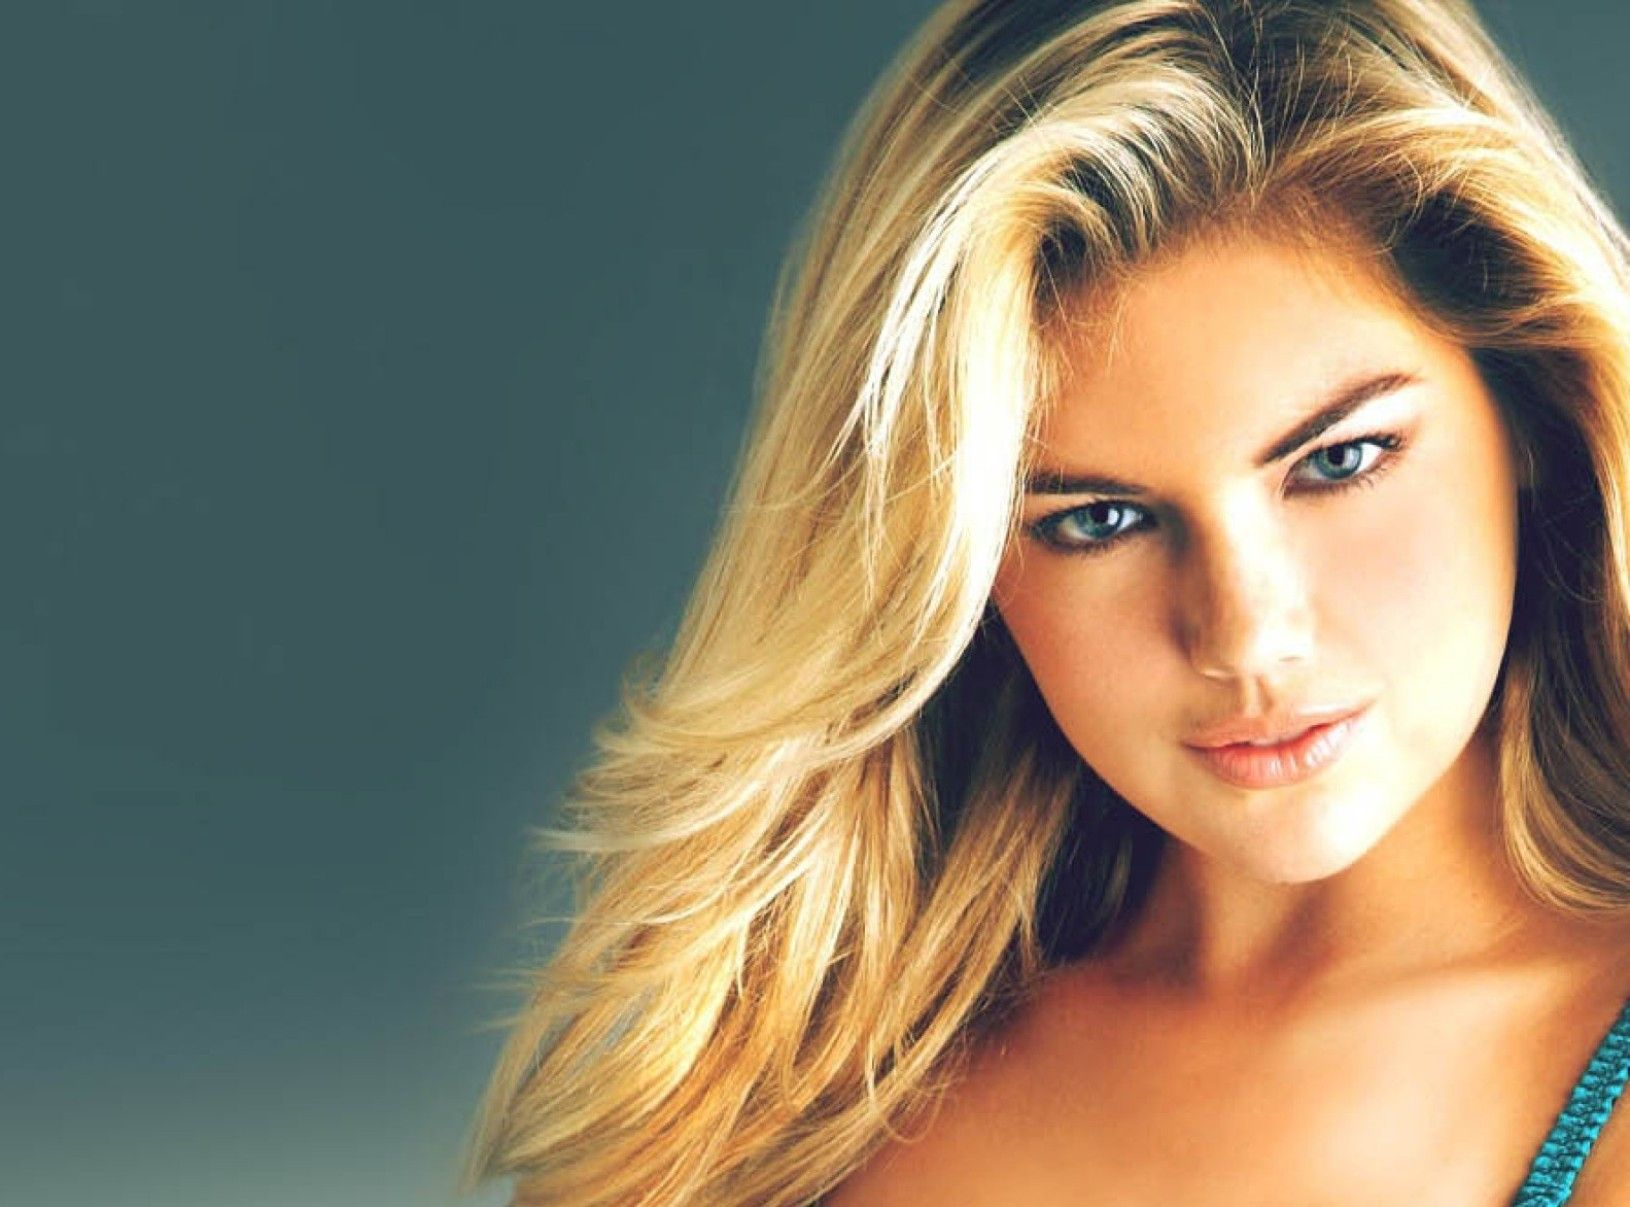 Kate Upton Hd Wallpaper 30 Background 1043661 Png Images Pngio